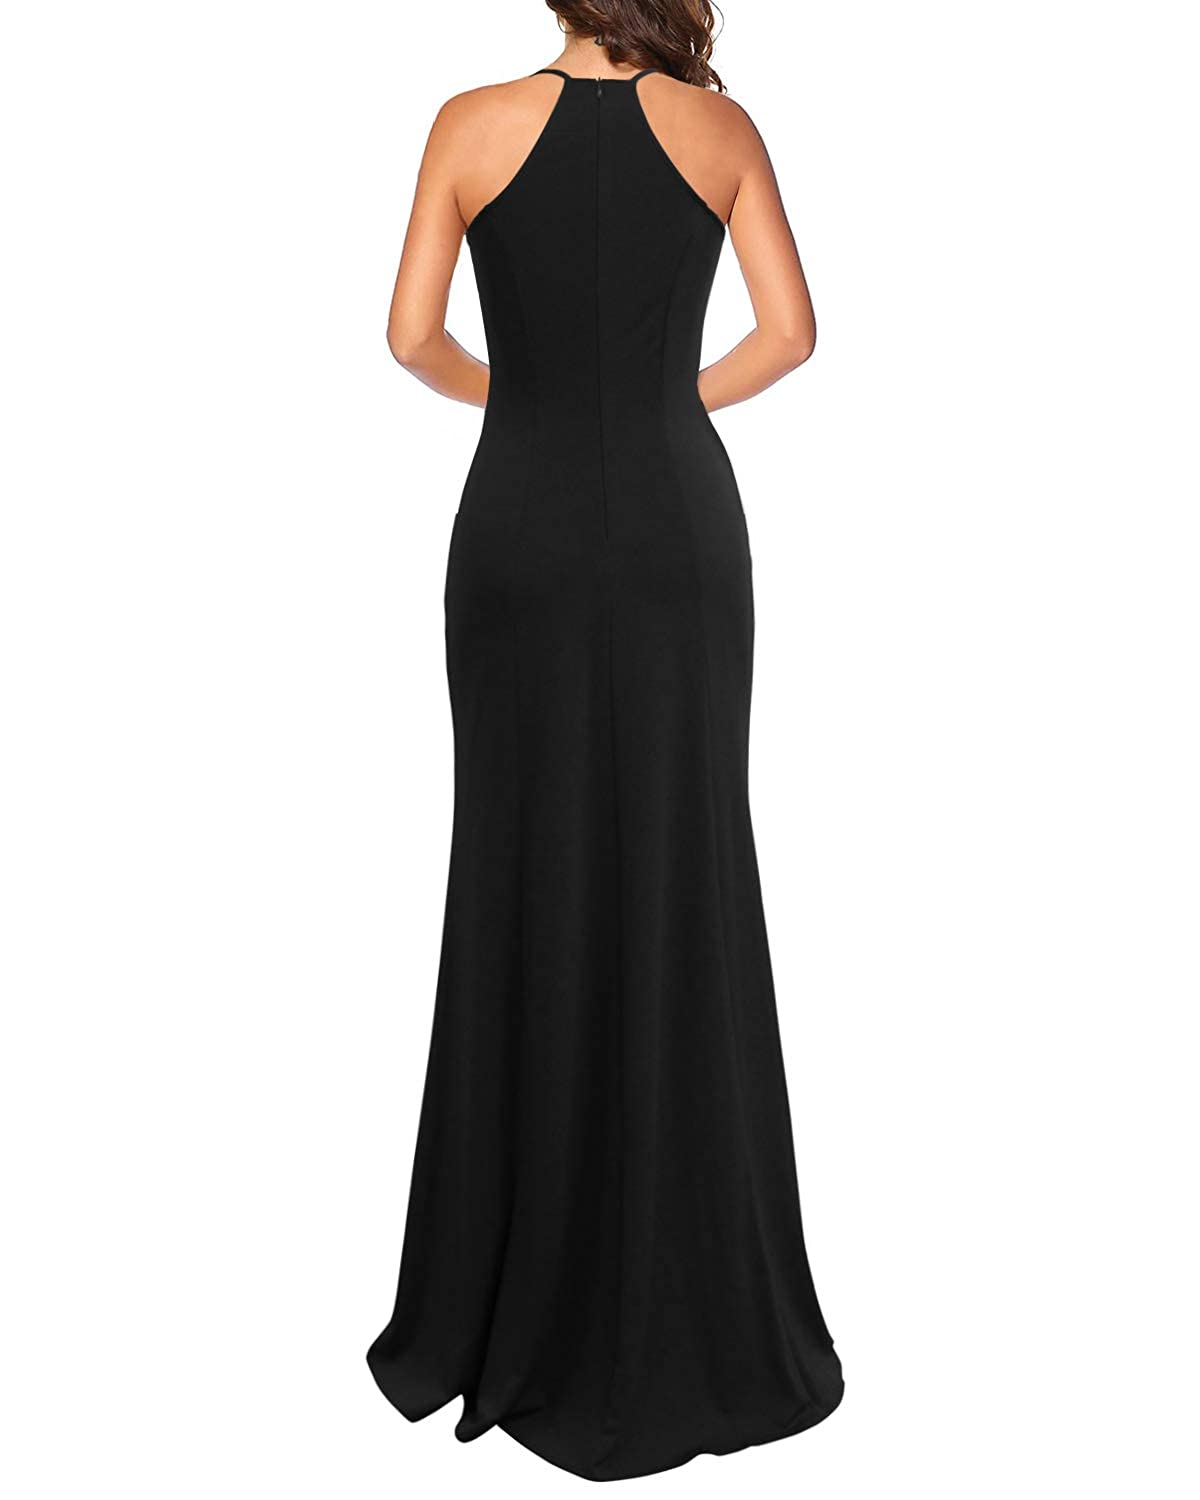 47bc5229c5 Lyrur Women s Sexy Spaghetti Straps Slit Formal Long Bridesmaid Maxi Party  Evening Dress Mermaid Prom Gown at Amazon Women s Clothing store